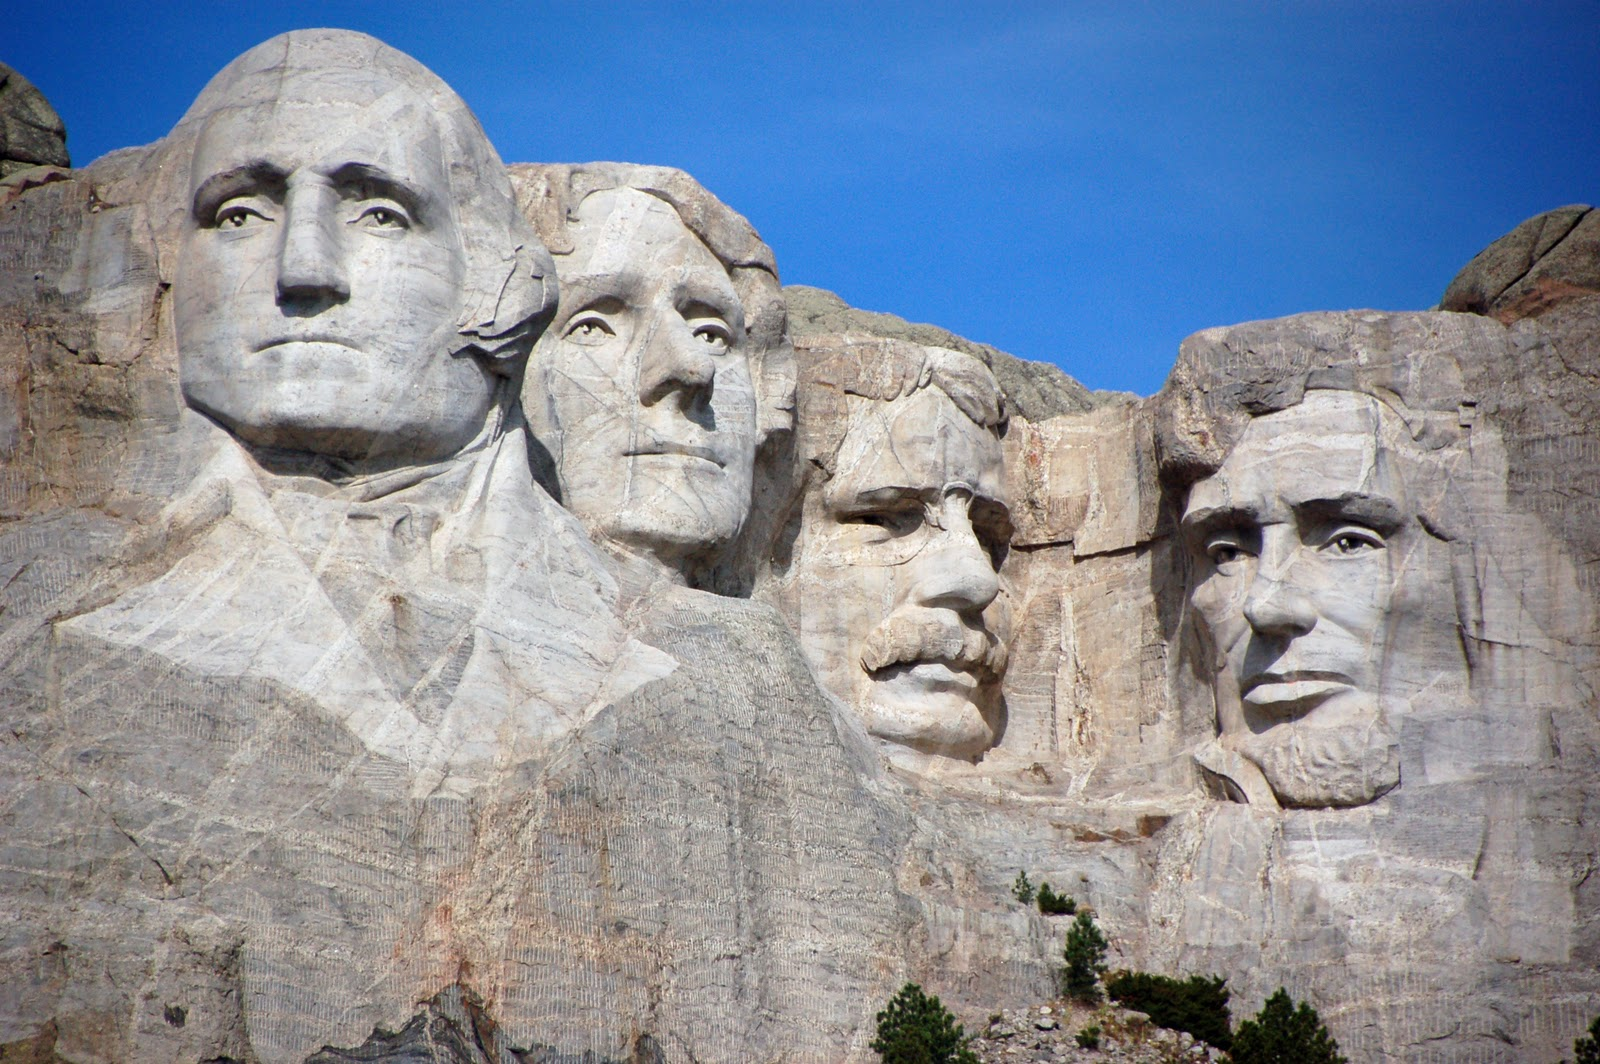 image of Mt Rushmore in the ancestral homelands of the Lakota people